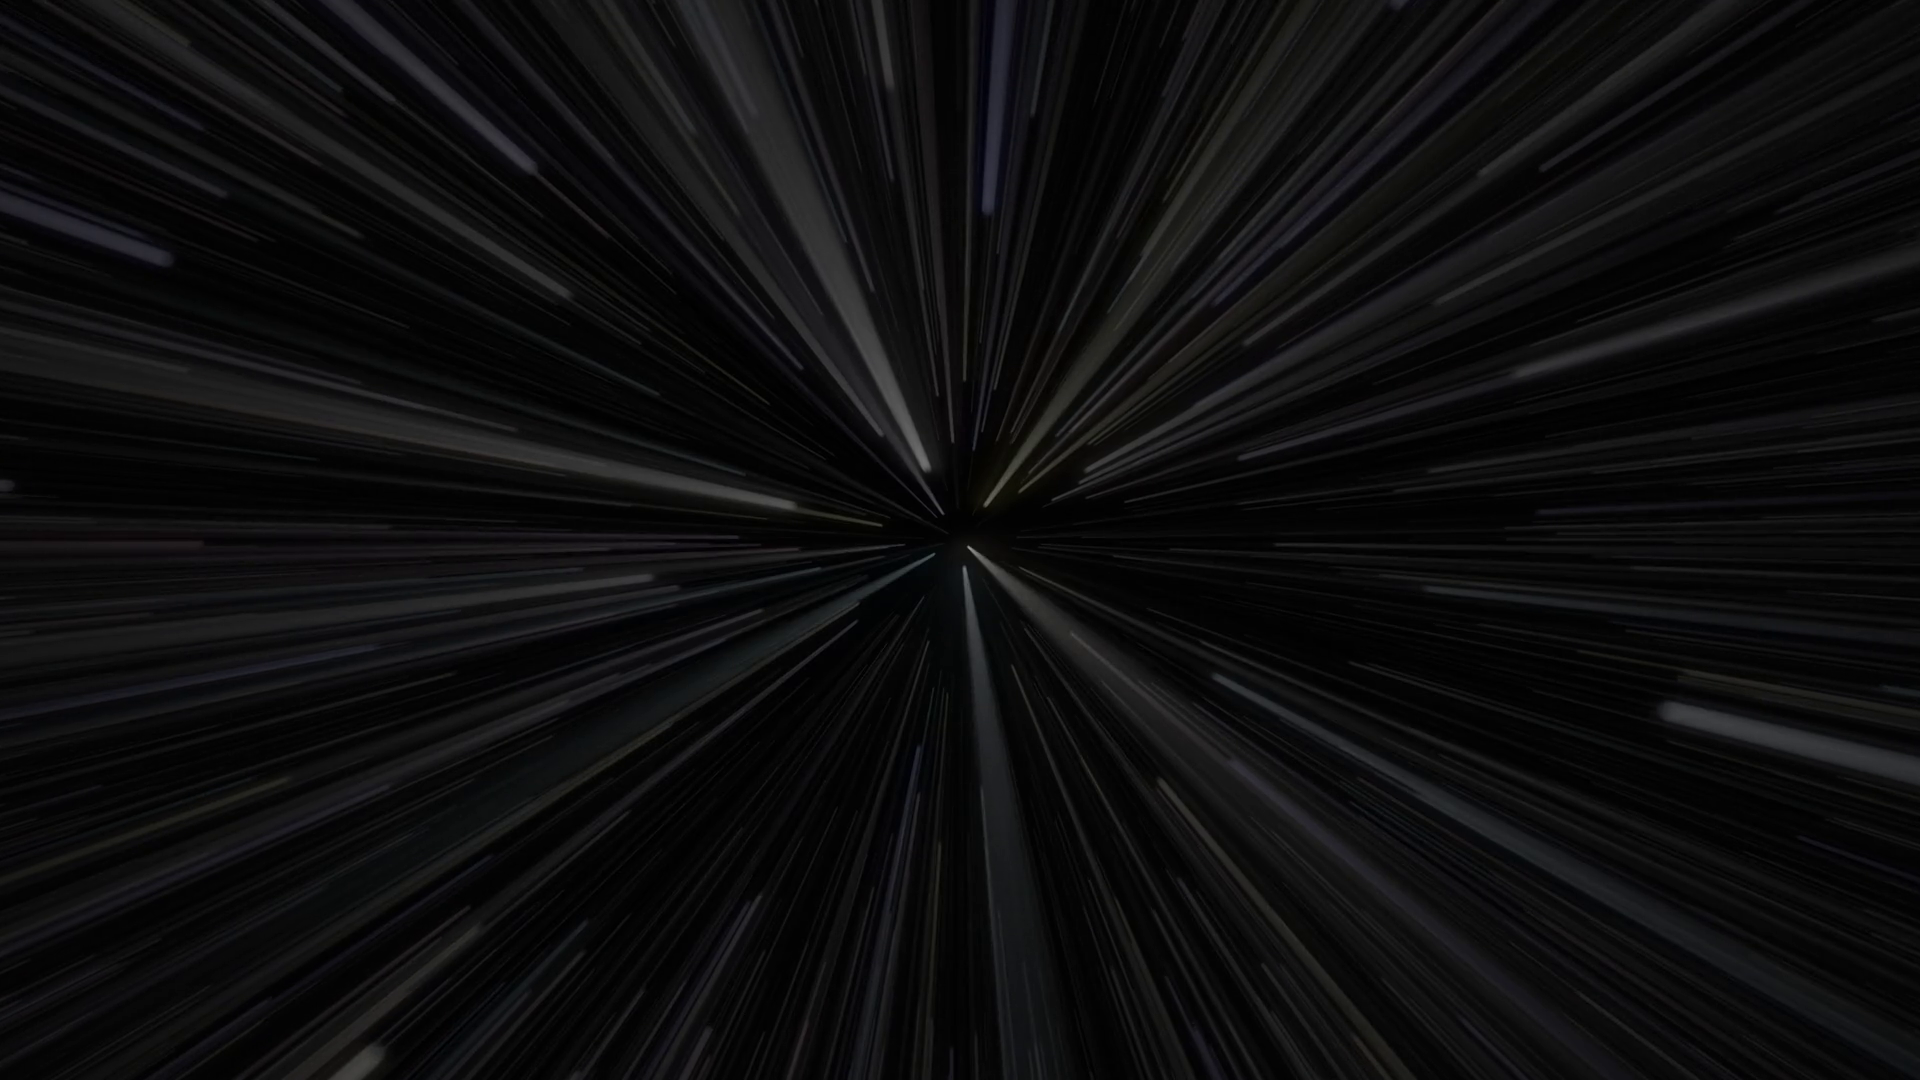 Space travelling - the speed of light Motion Background - Videoblocks